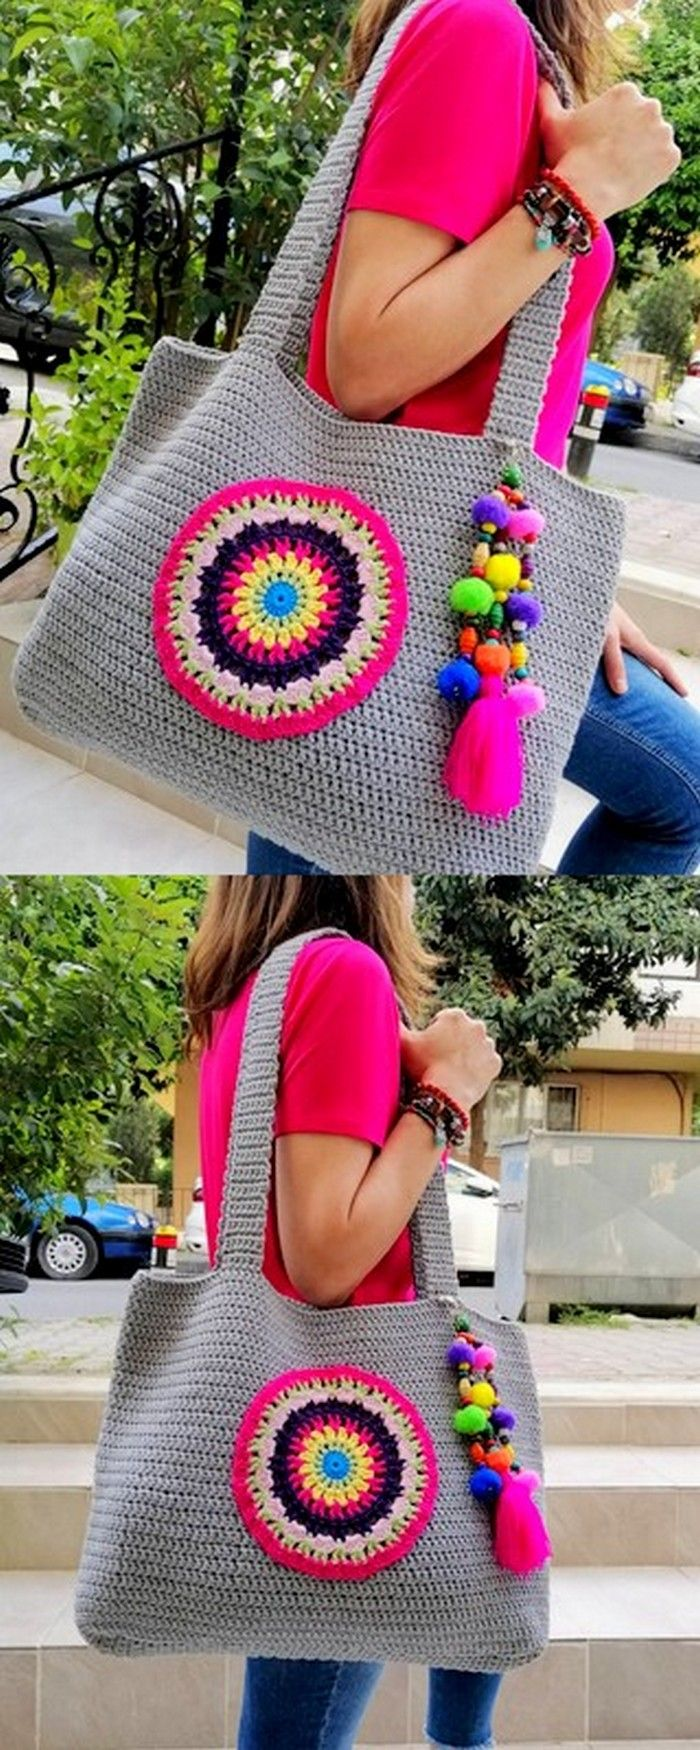 70+Modern Style Crochet Ideas And Designs